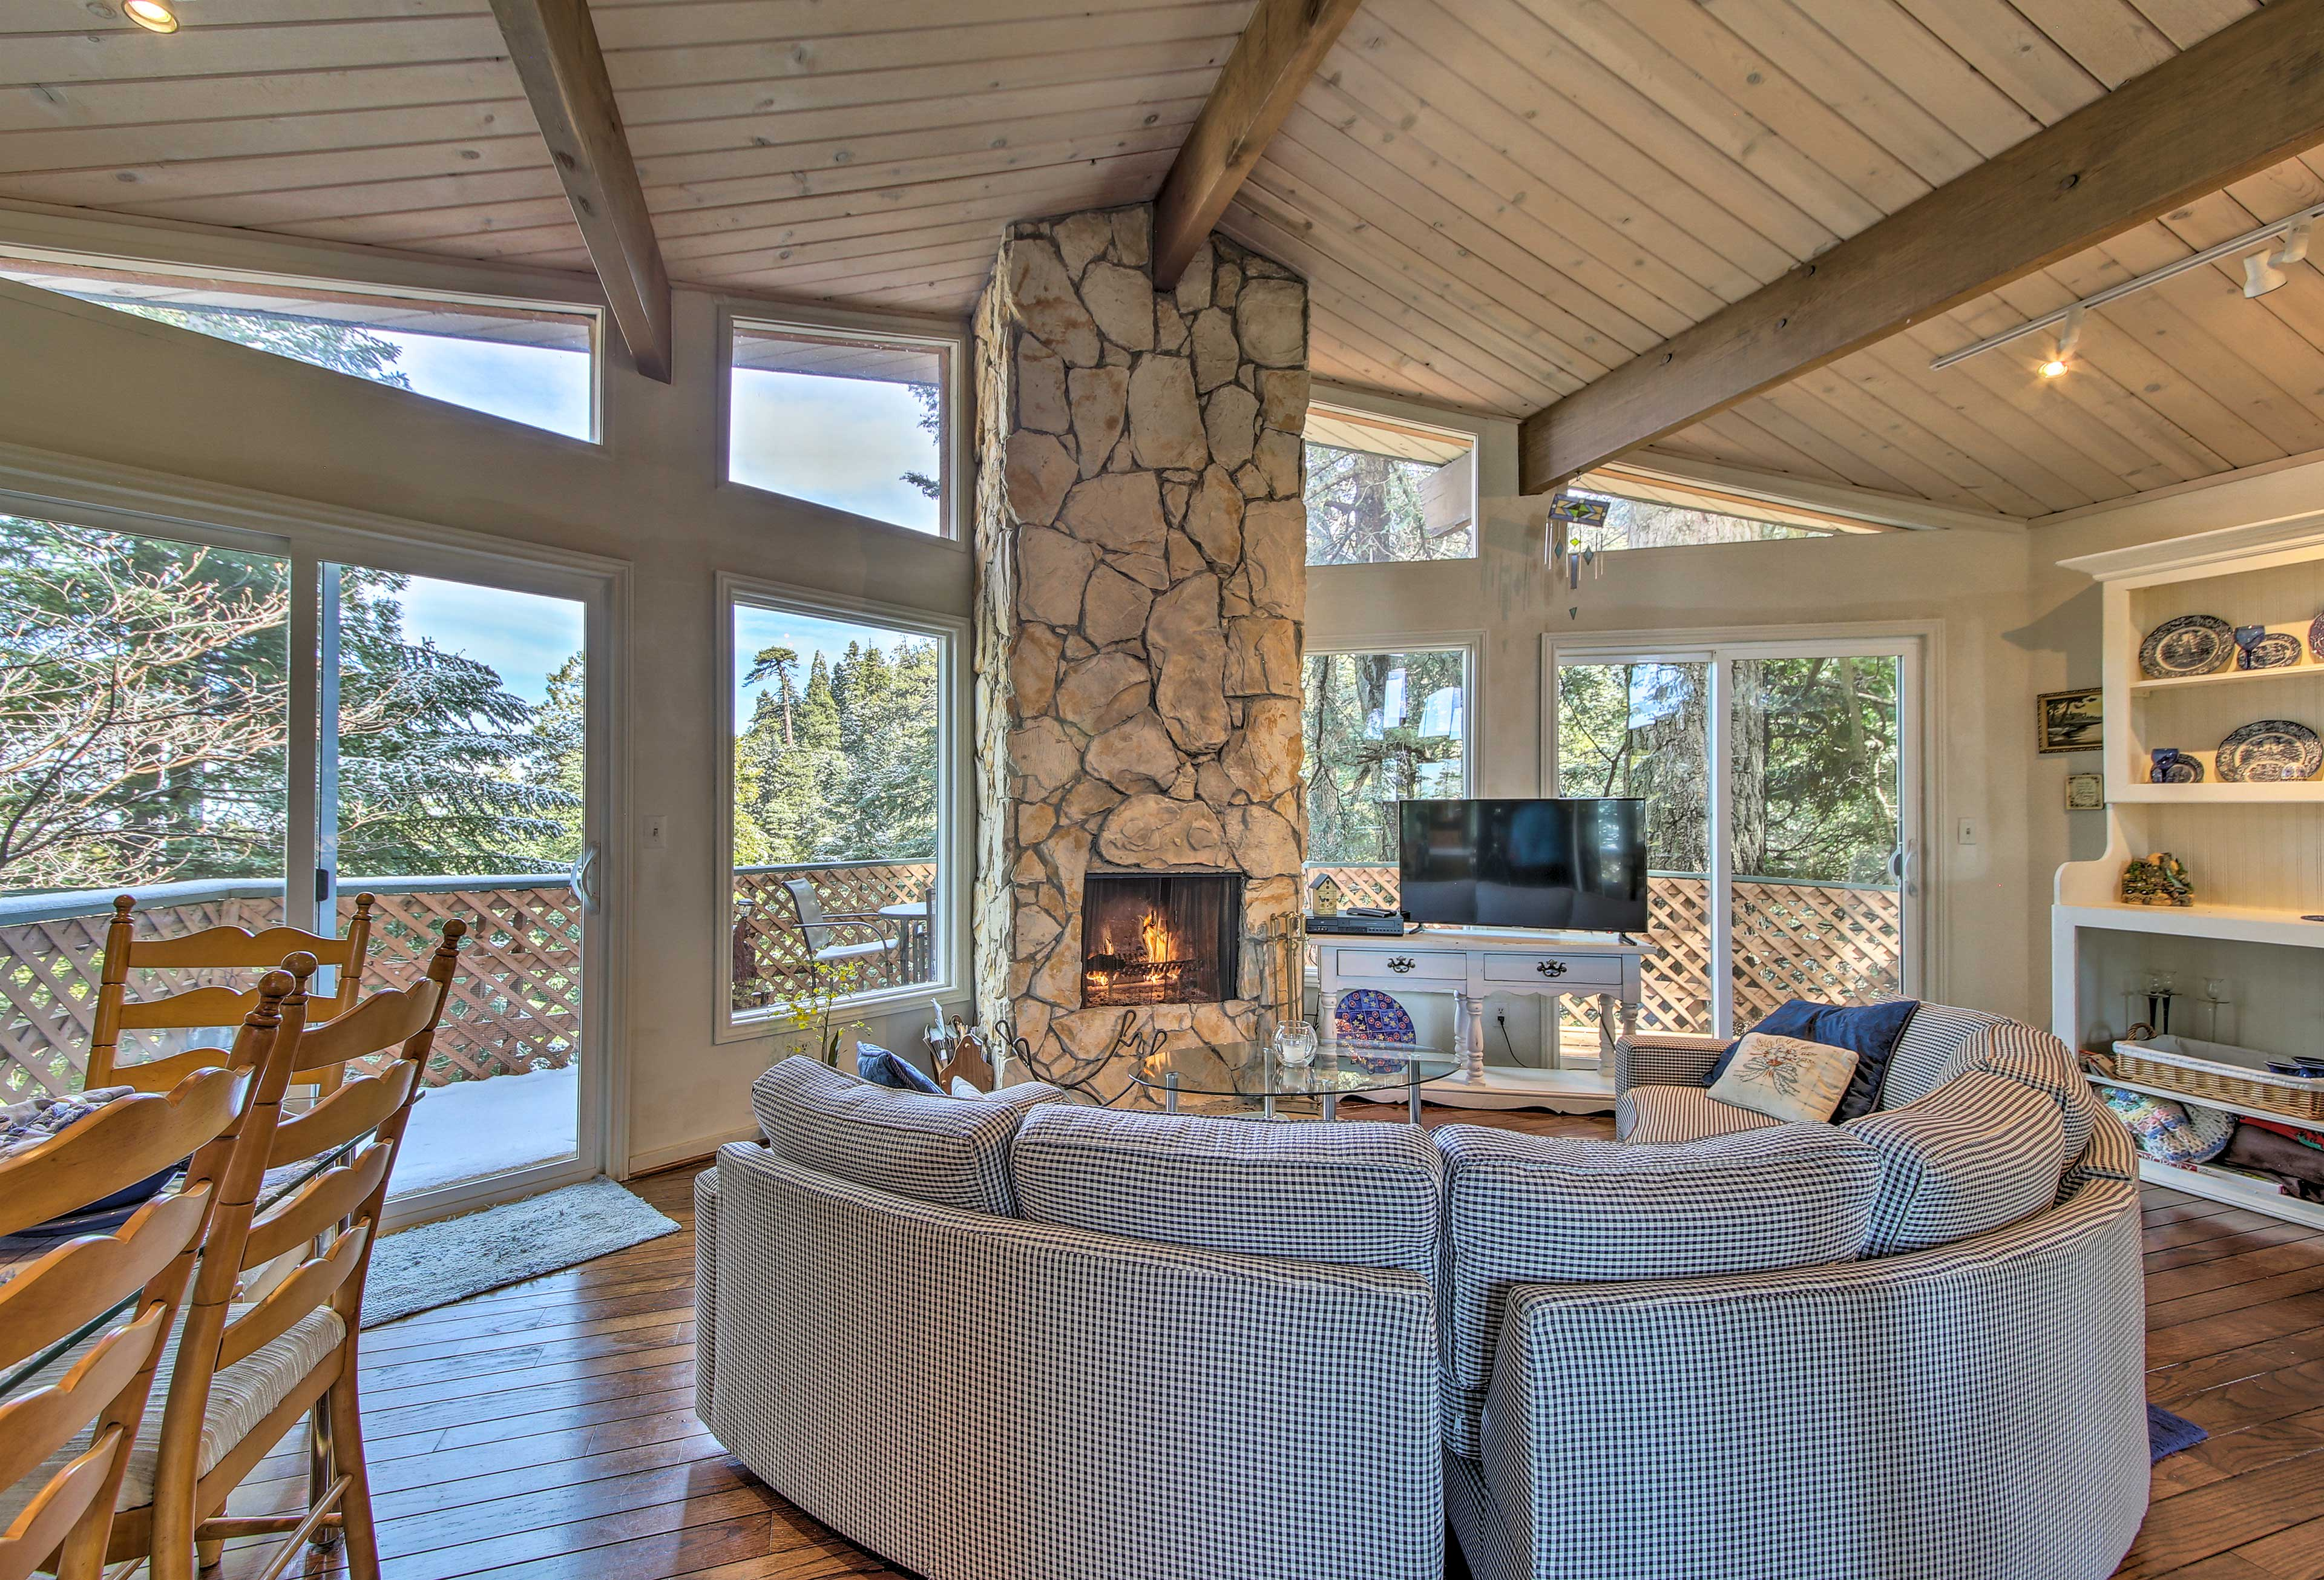 Natural light pours through the doors and windows.